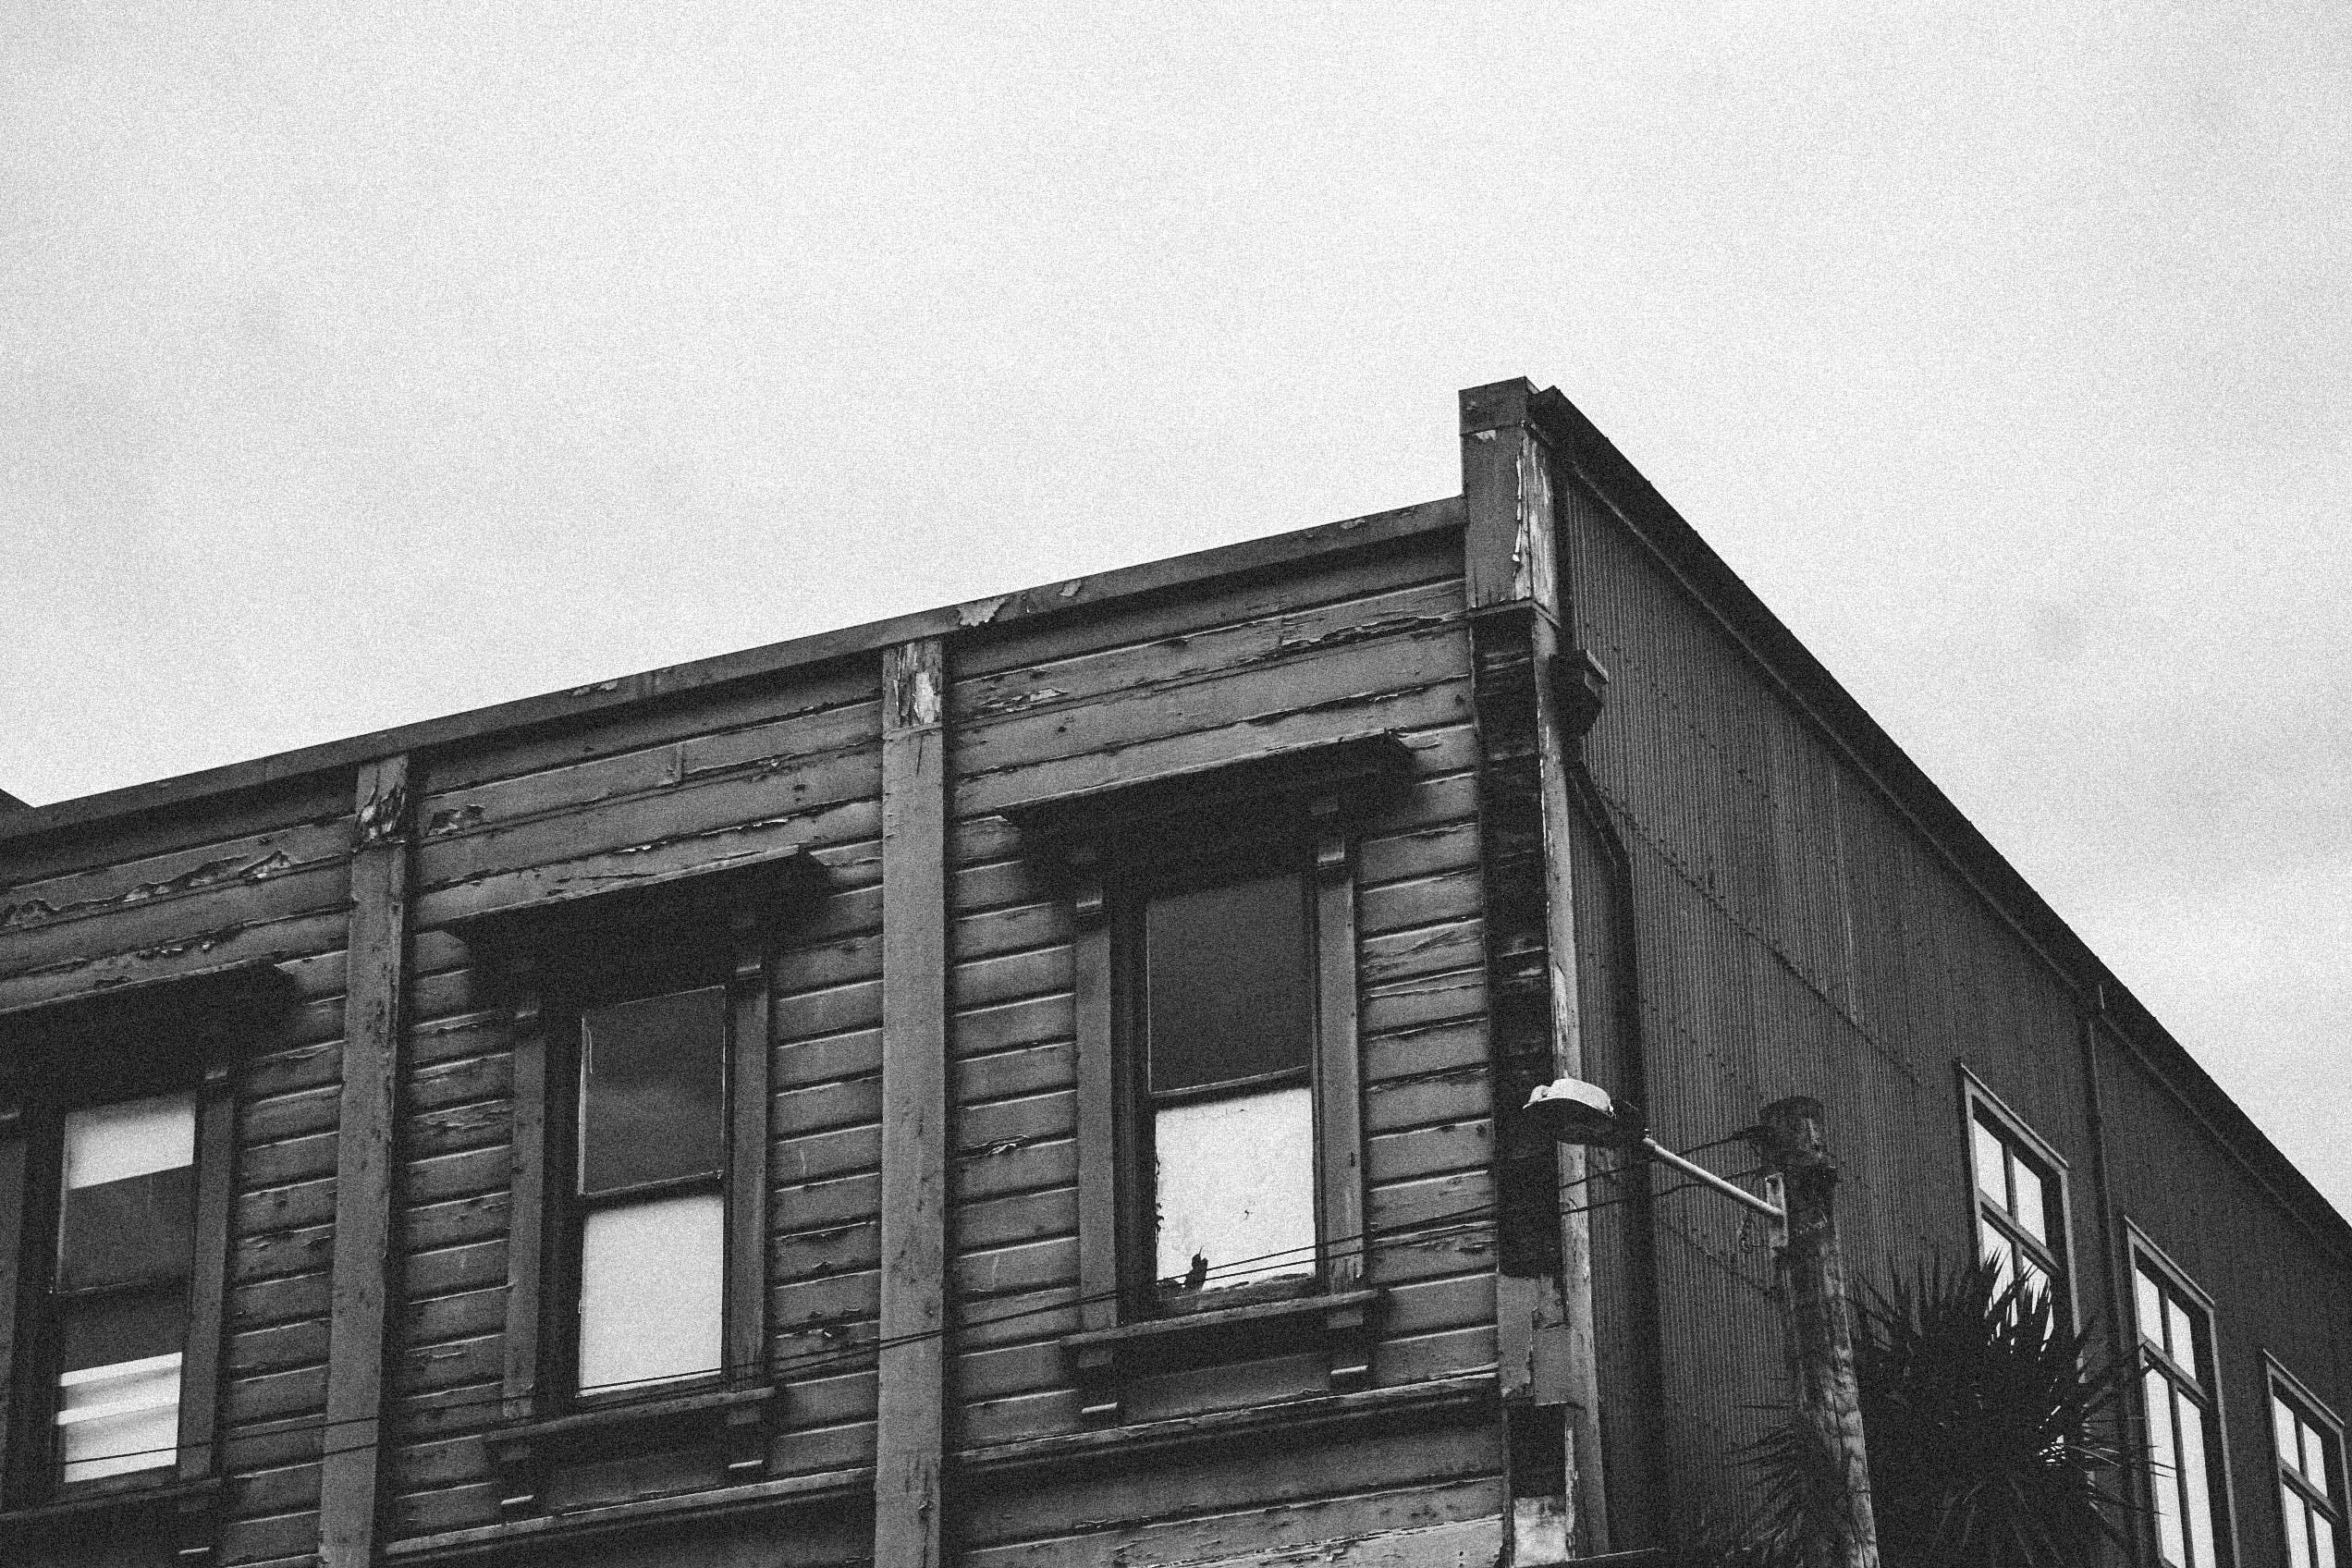 Grayscale Photo of Building